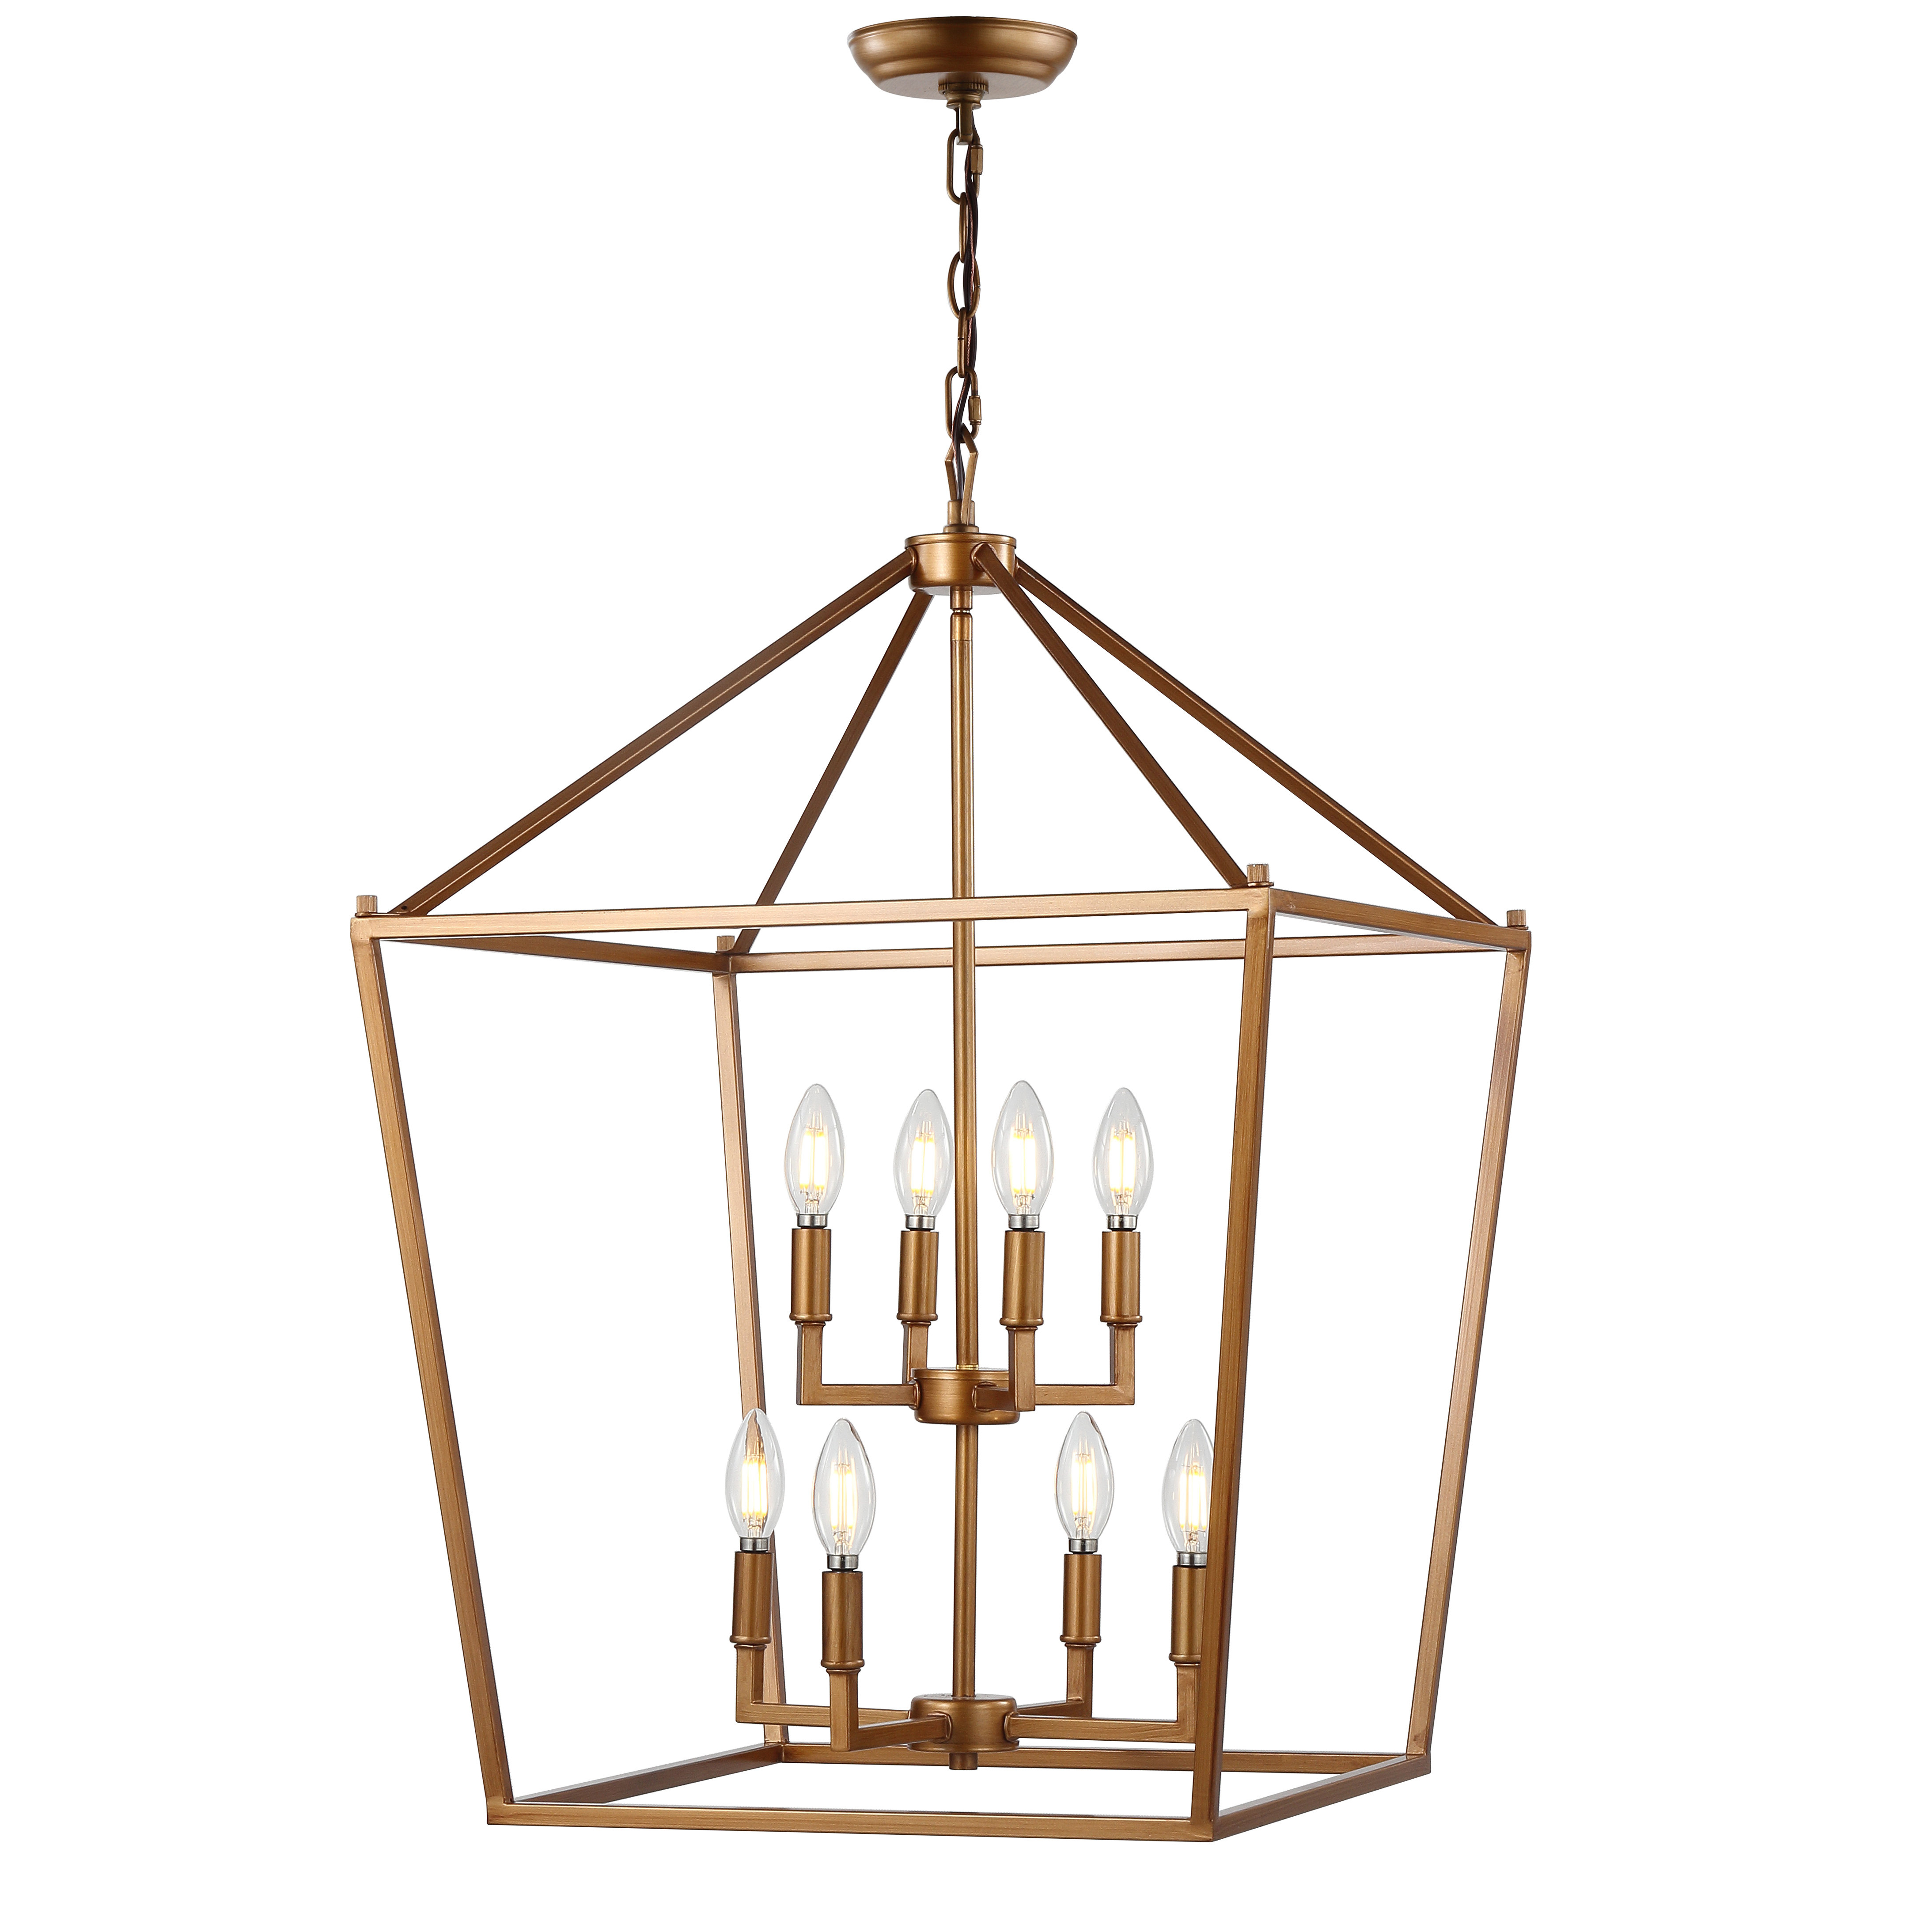 Maggiemae 8 Light Lantern Pendant For Most Up To Date Carmen 8 Light Lantern Tiered Pendants (View 11 of 20)